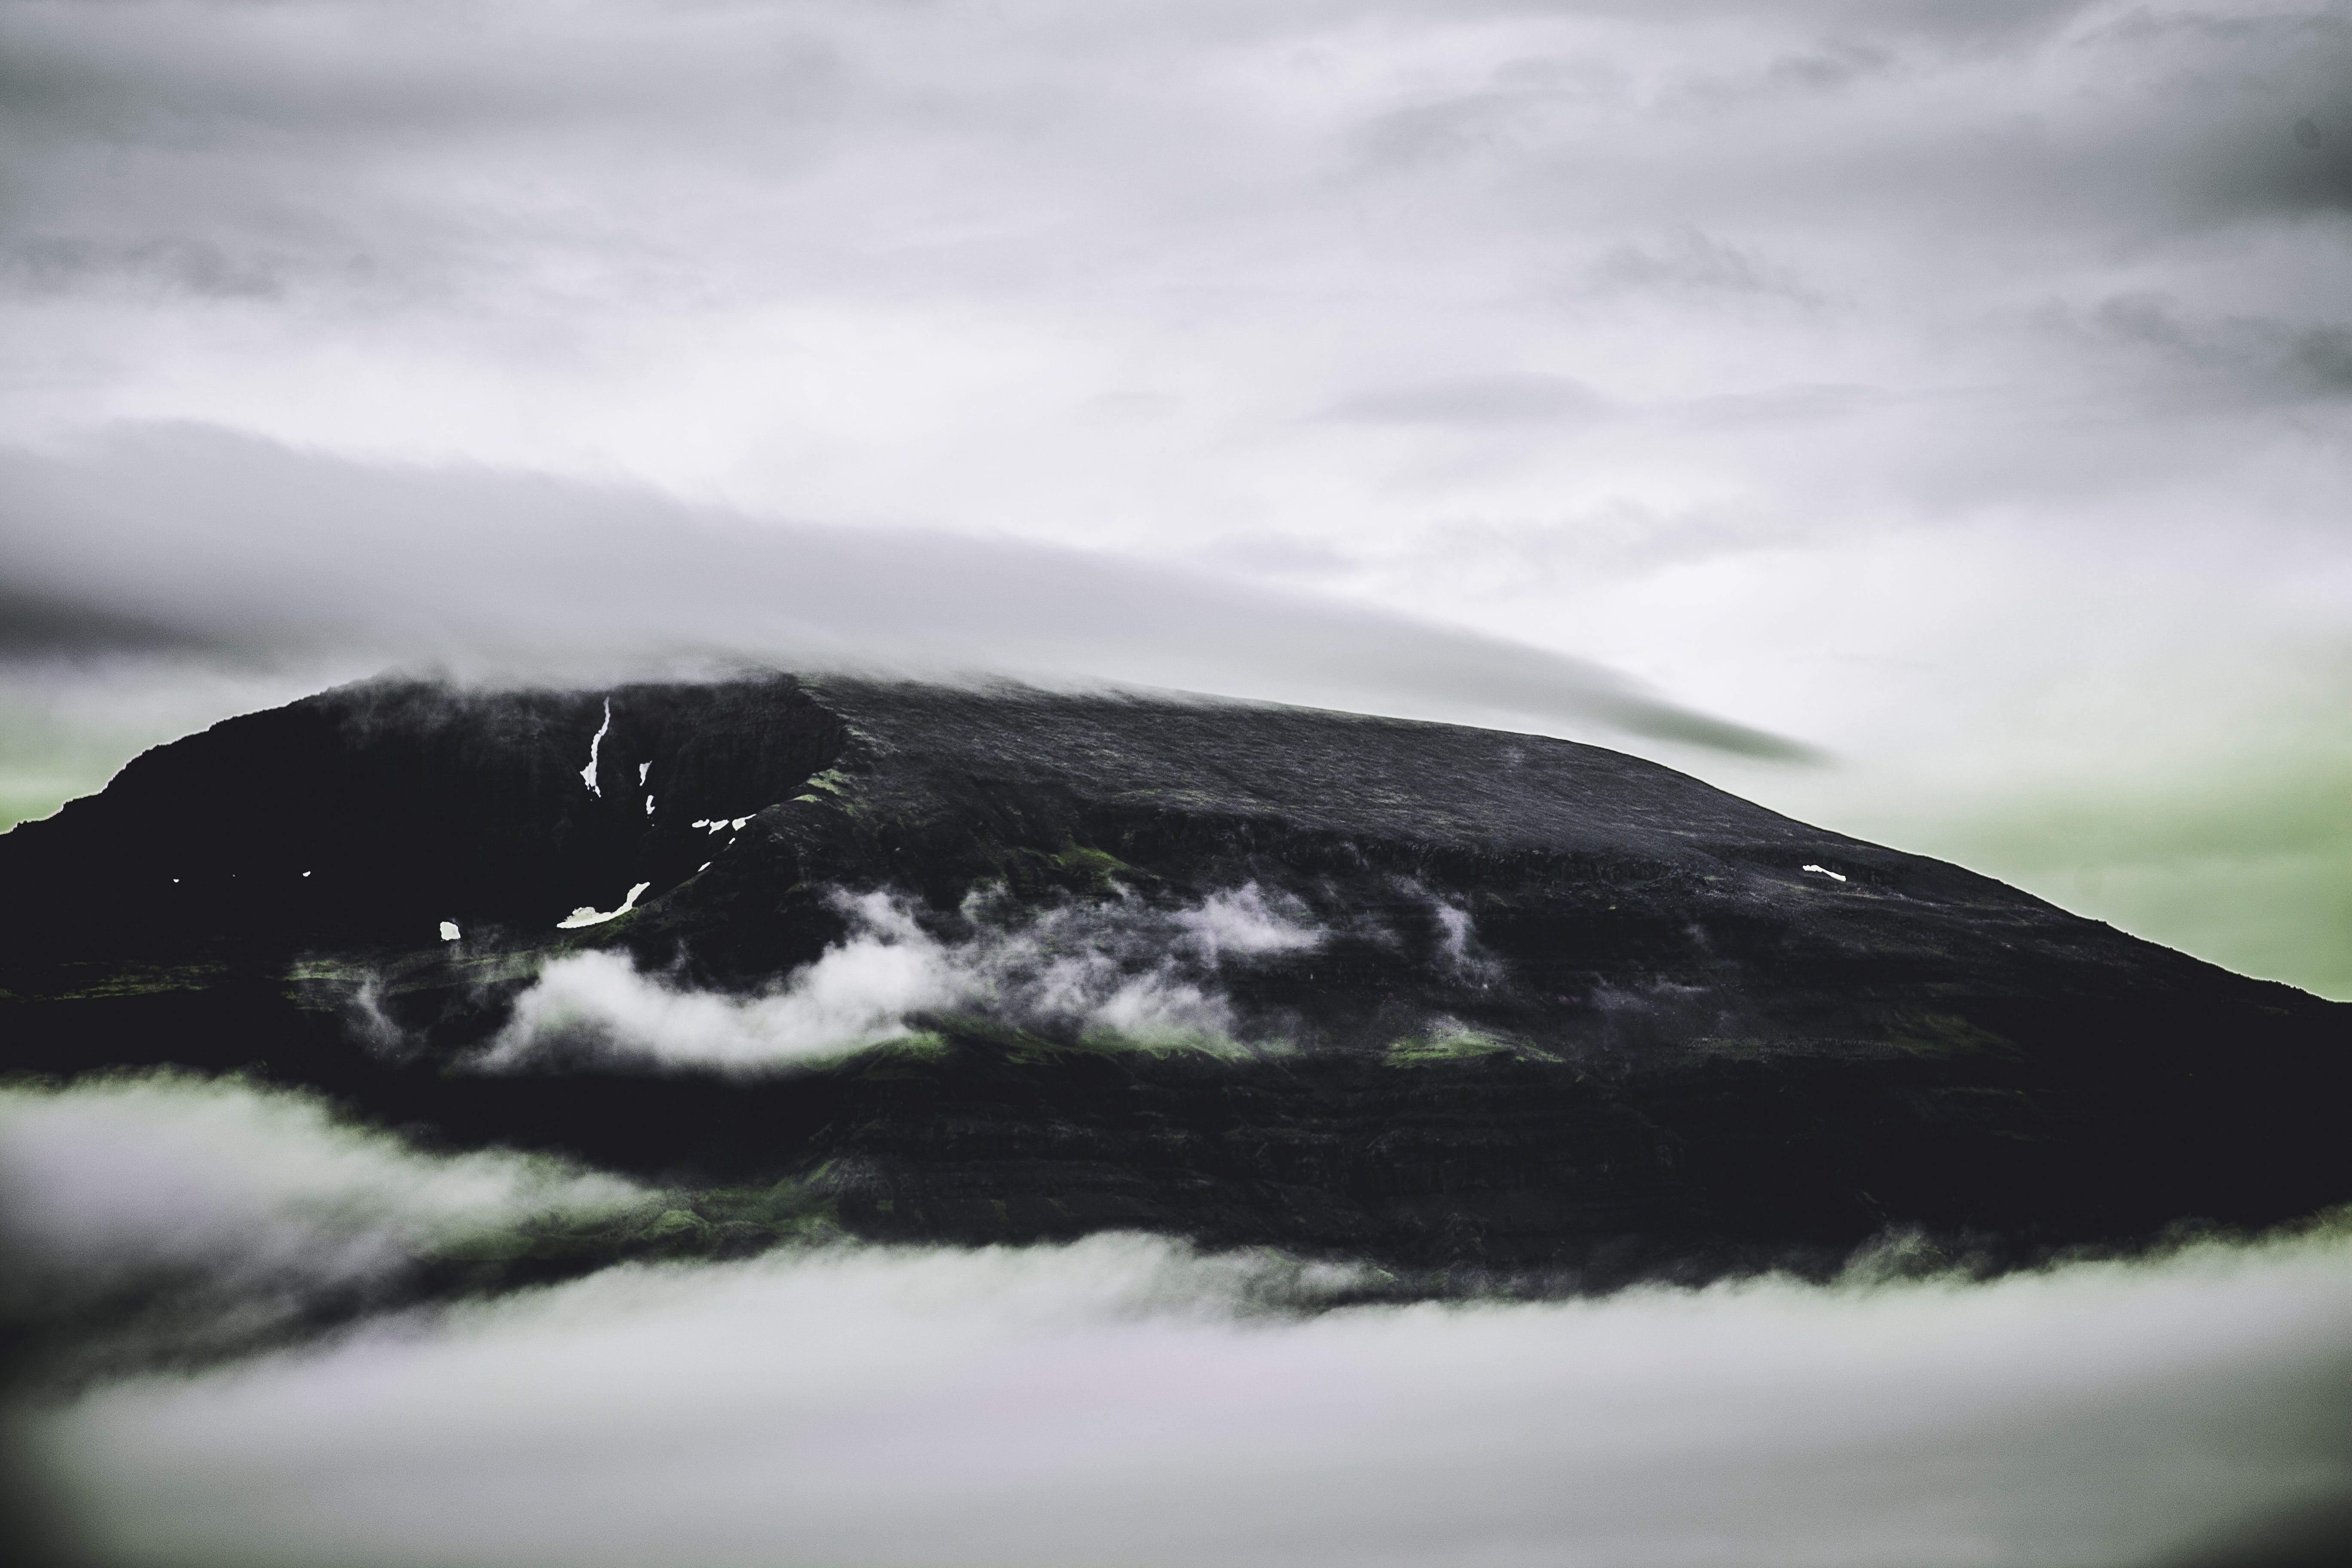 black mountain covered with clouds during daytime